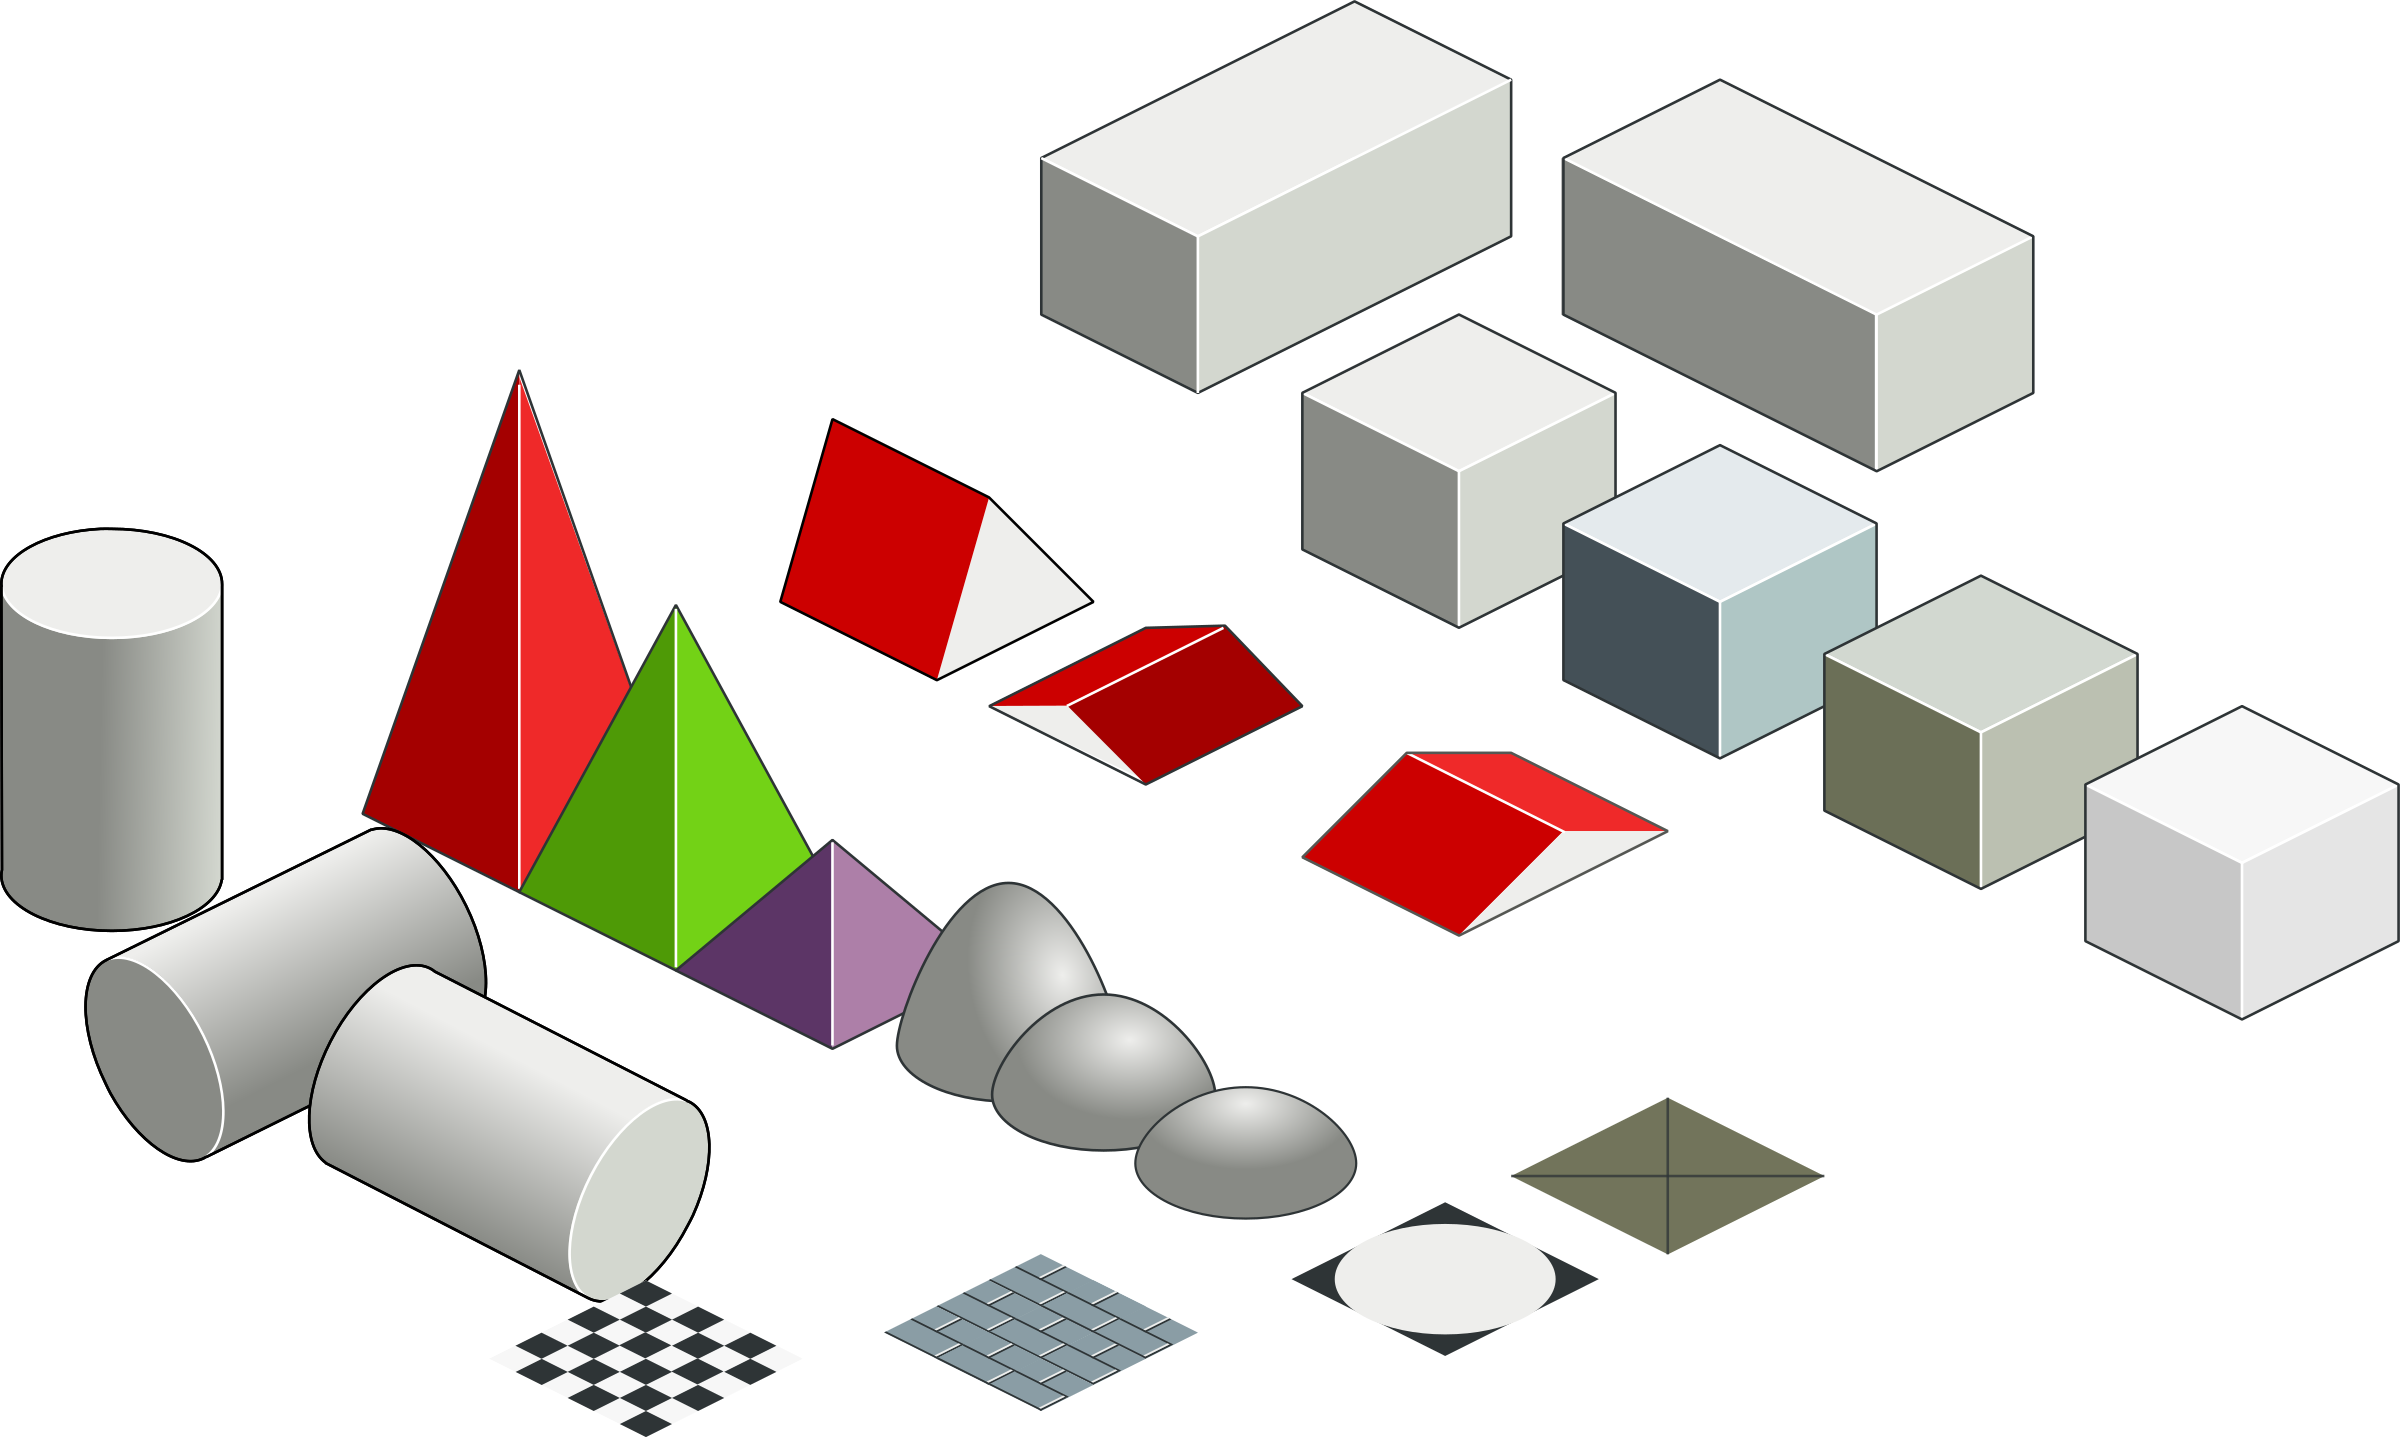 Set of basic isometric figures by rg1024